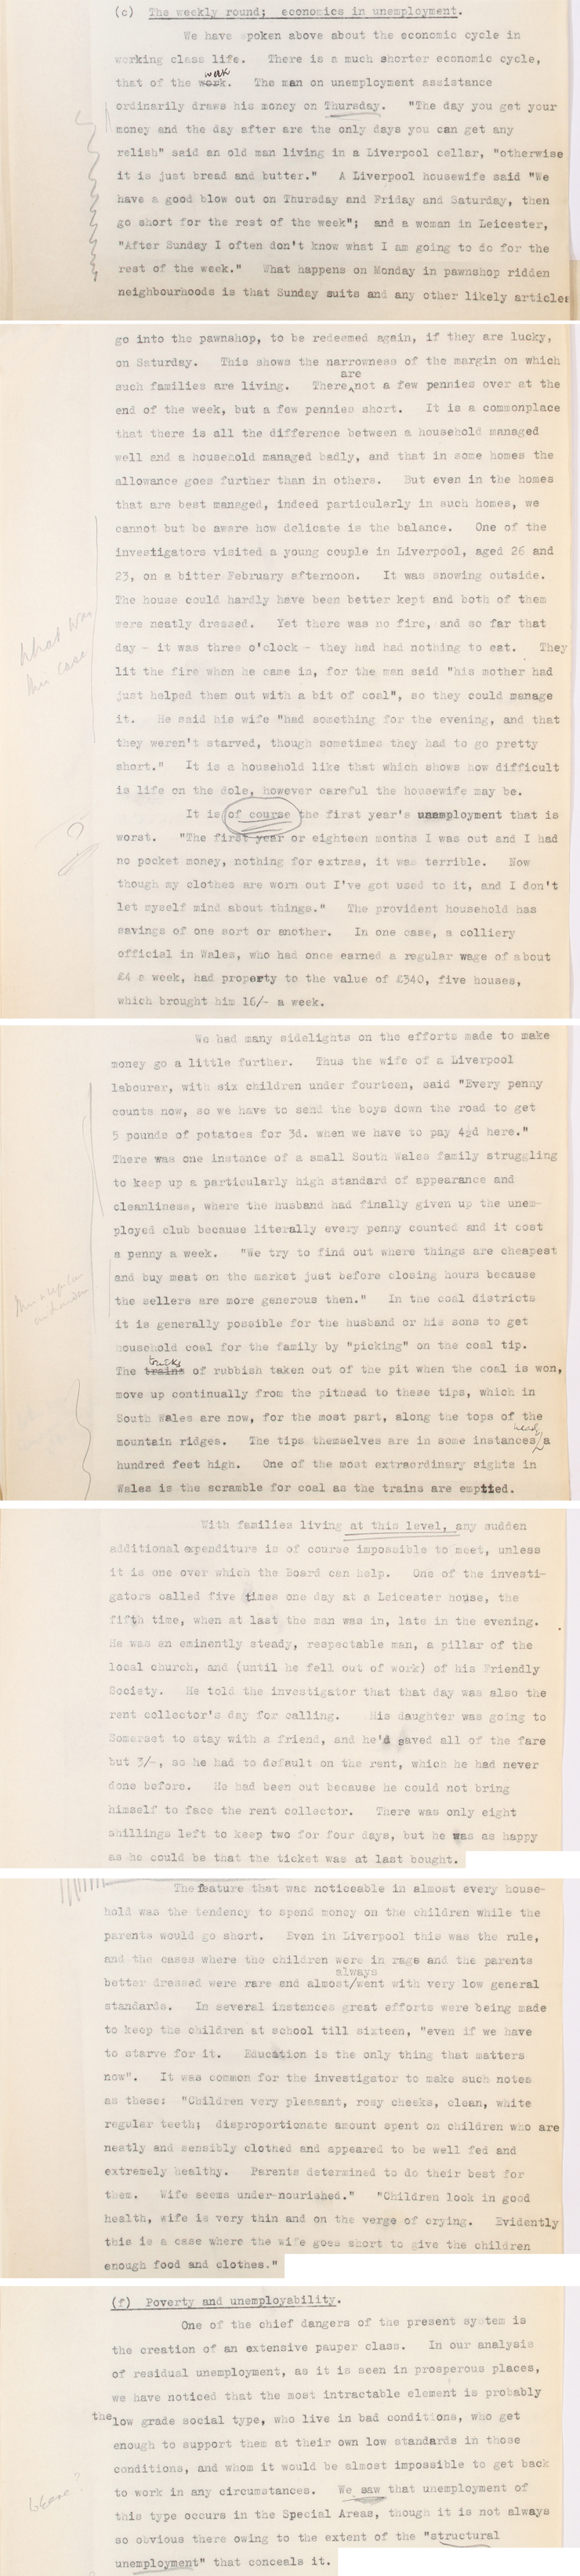 Extracts from the Pilgrim Trust Unemployment Enquiry, 1936-1938 (AST 7/255)